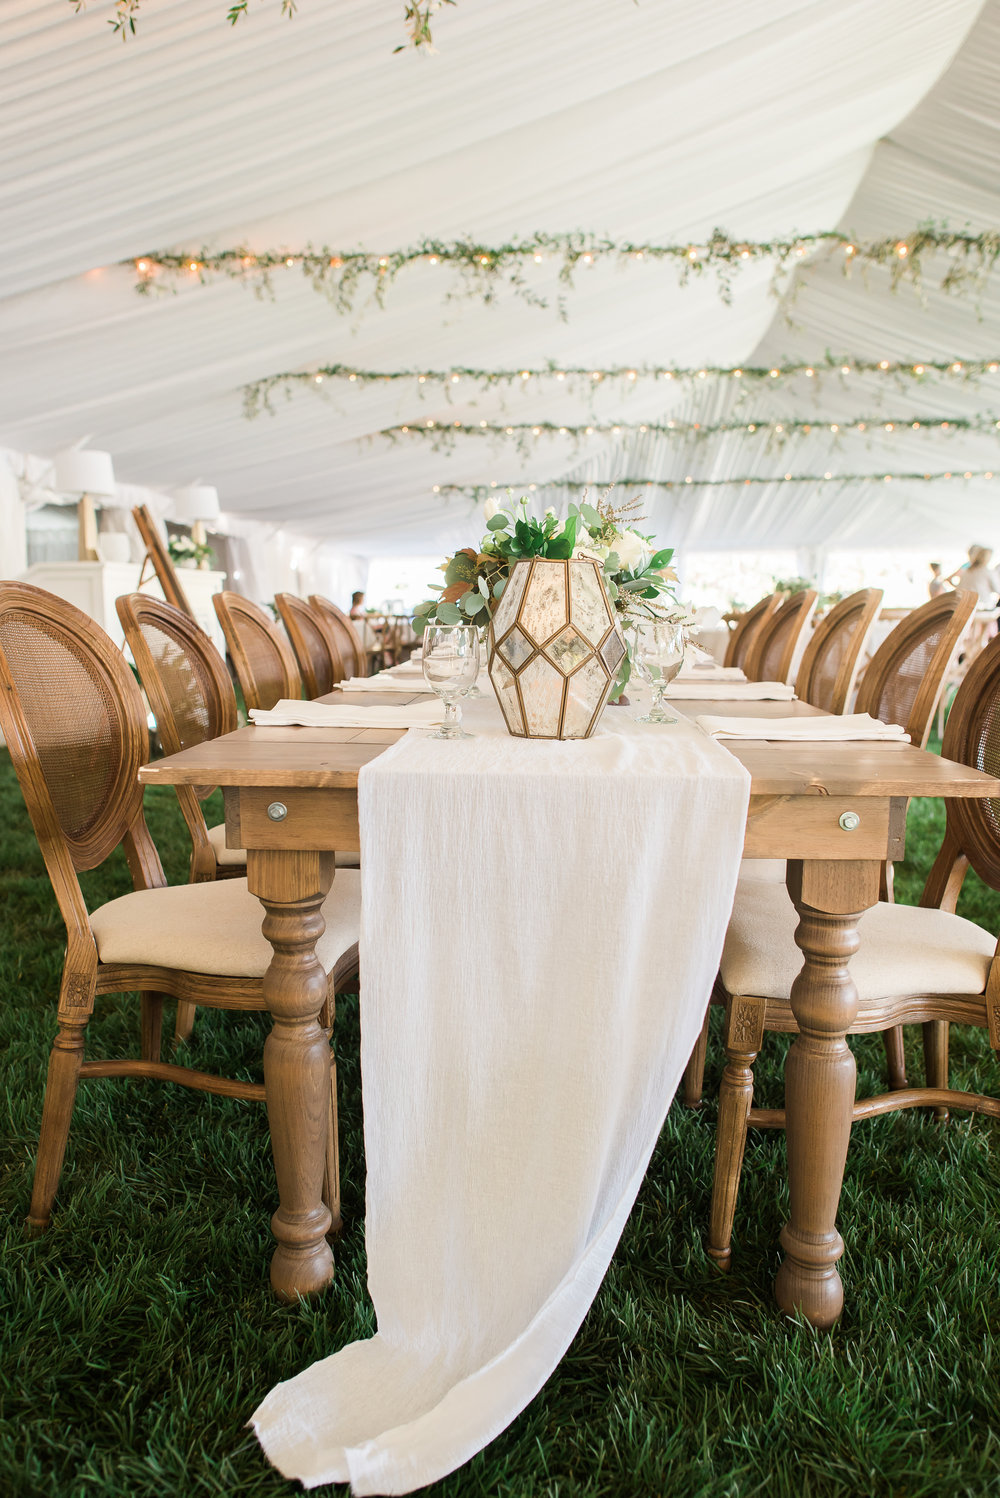 Ira + Lucy Farm House Table Rentals